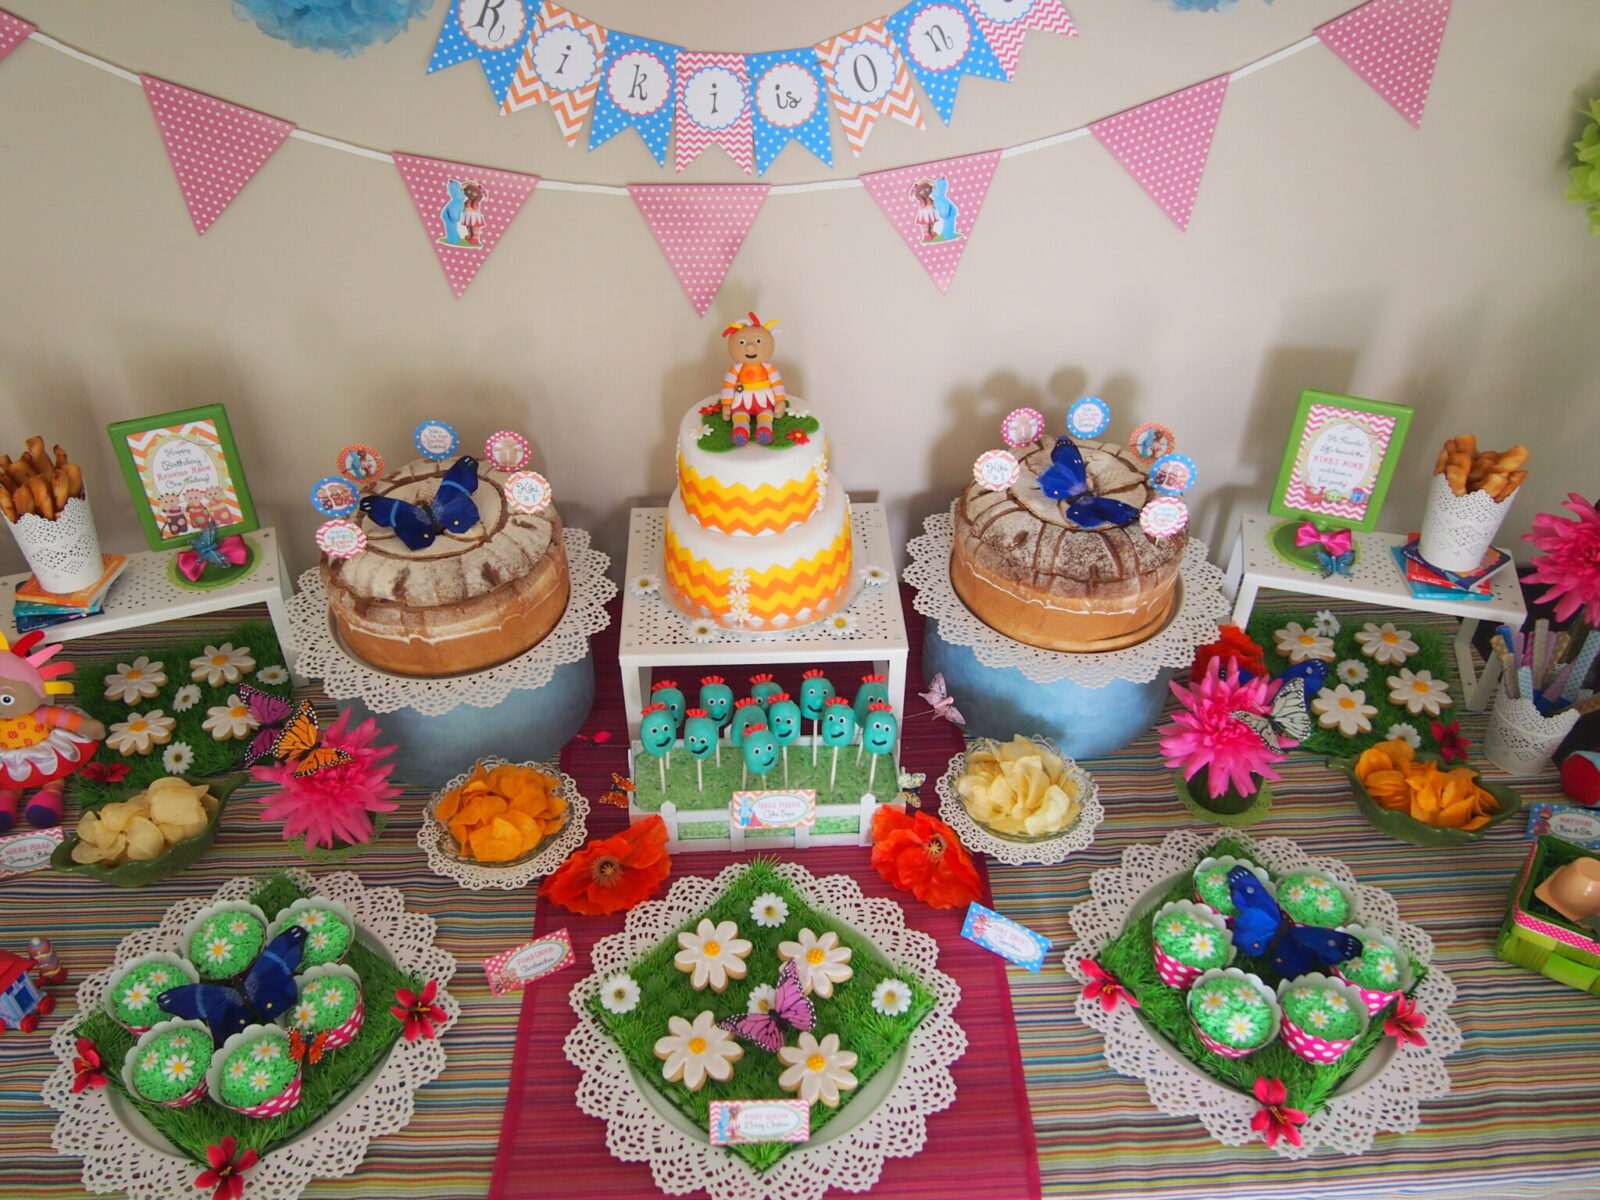 Guest Party In The Night Garden First Birthday